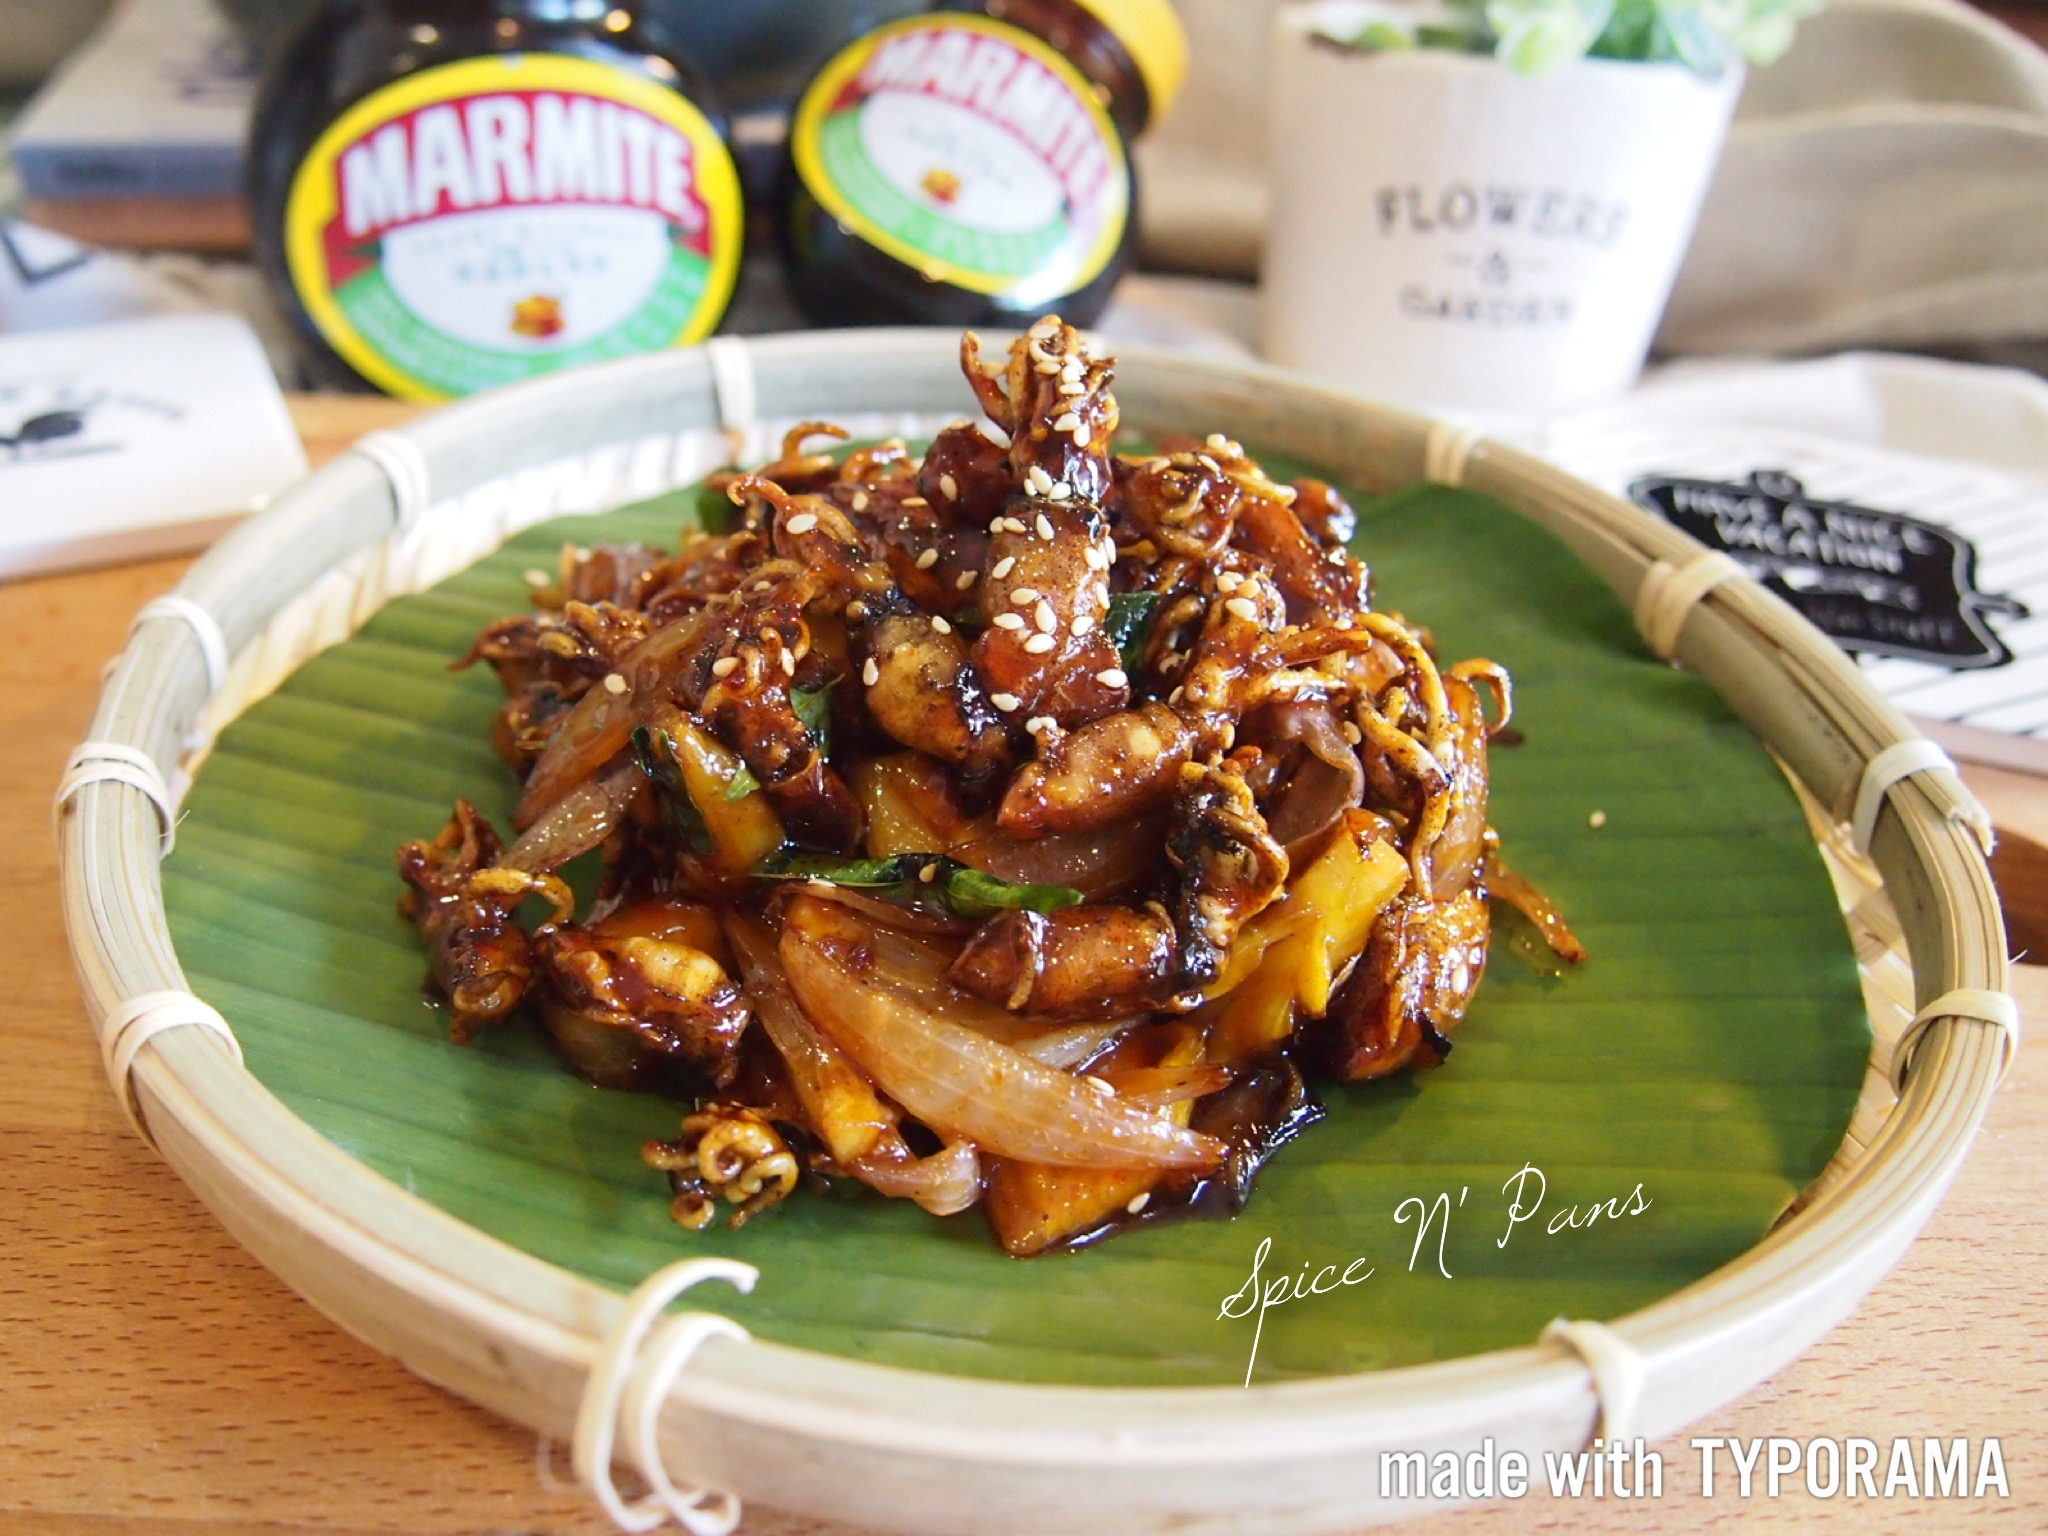 Awesome marmite crispy baby squid spice n pans awesome marmite crispy baby squid forumfinder Images